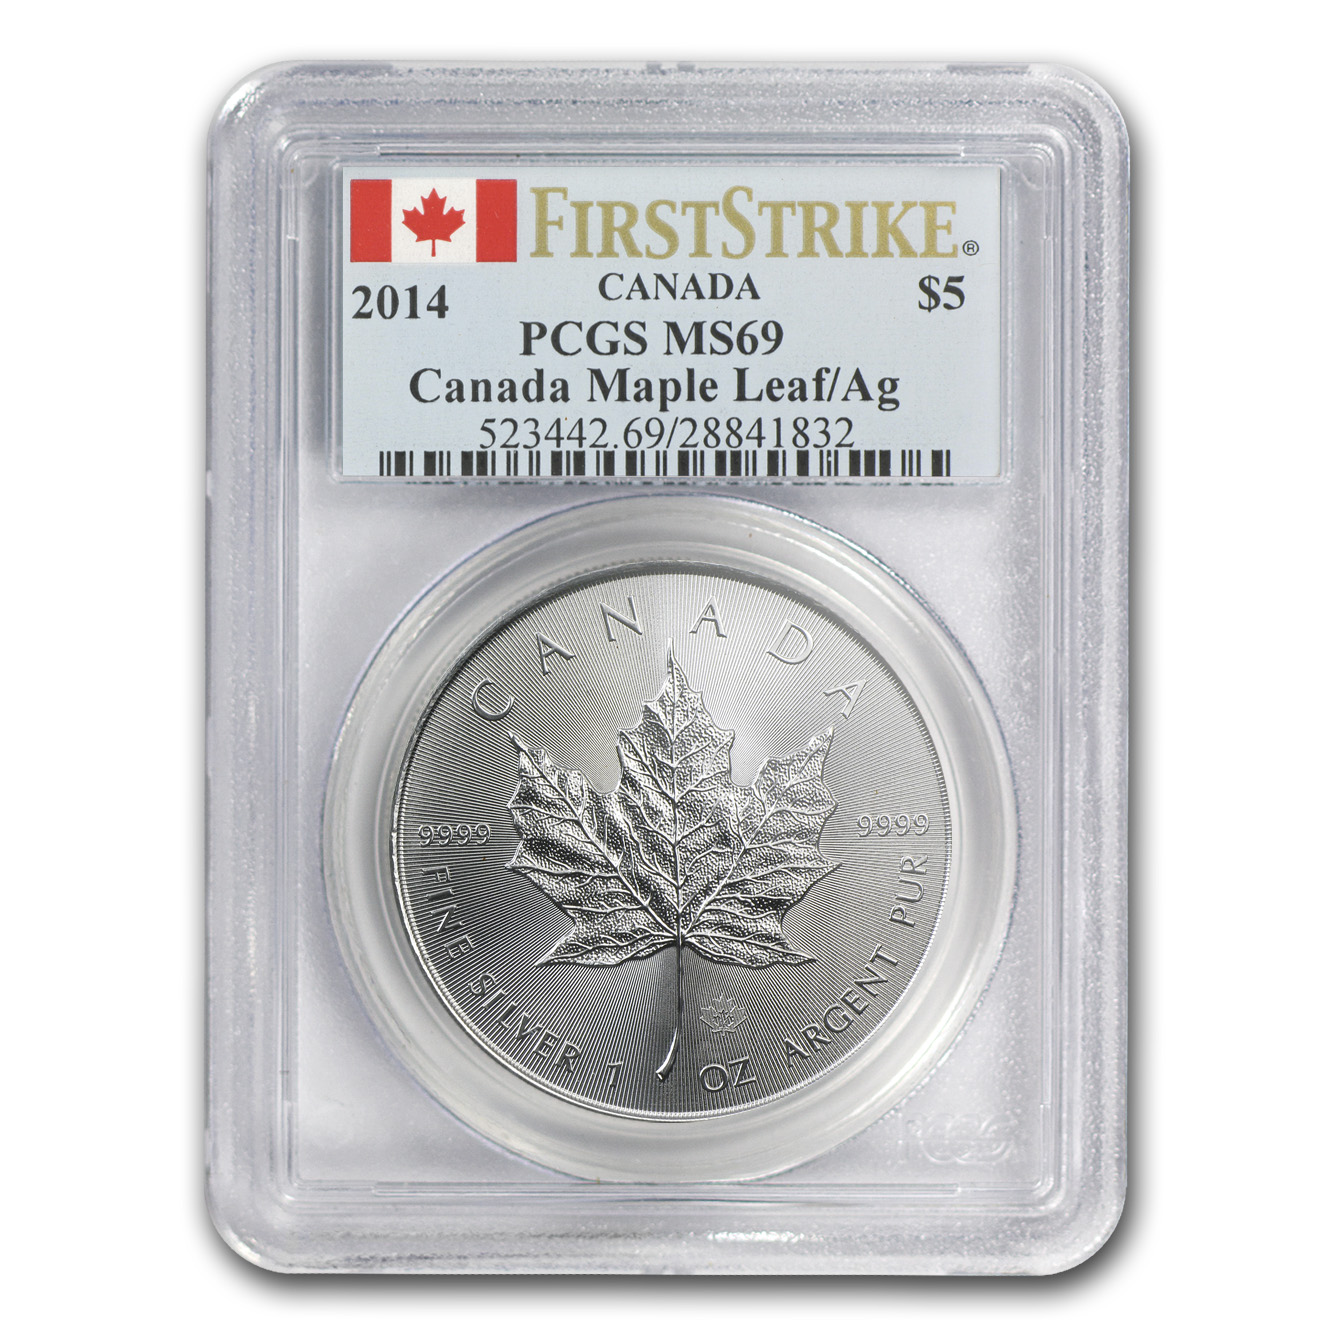 2014 1 oz Silver Canadian Maple Leaf MS-69 PCGS (First Strike)